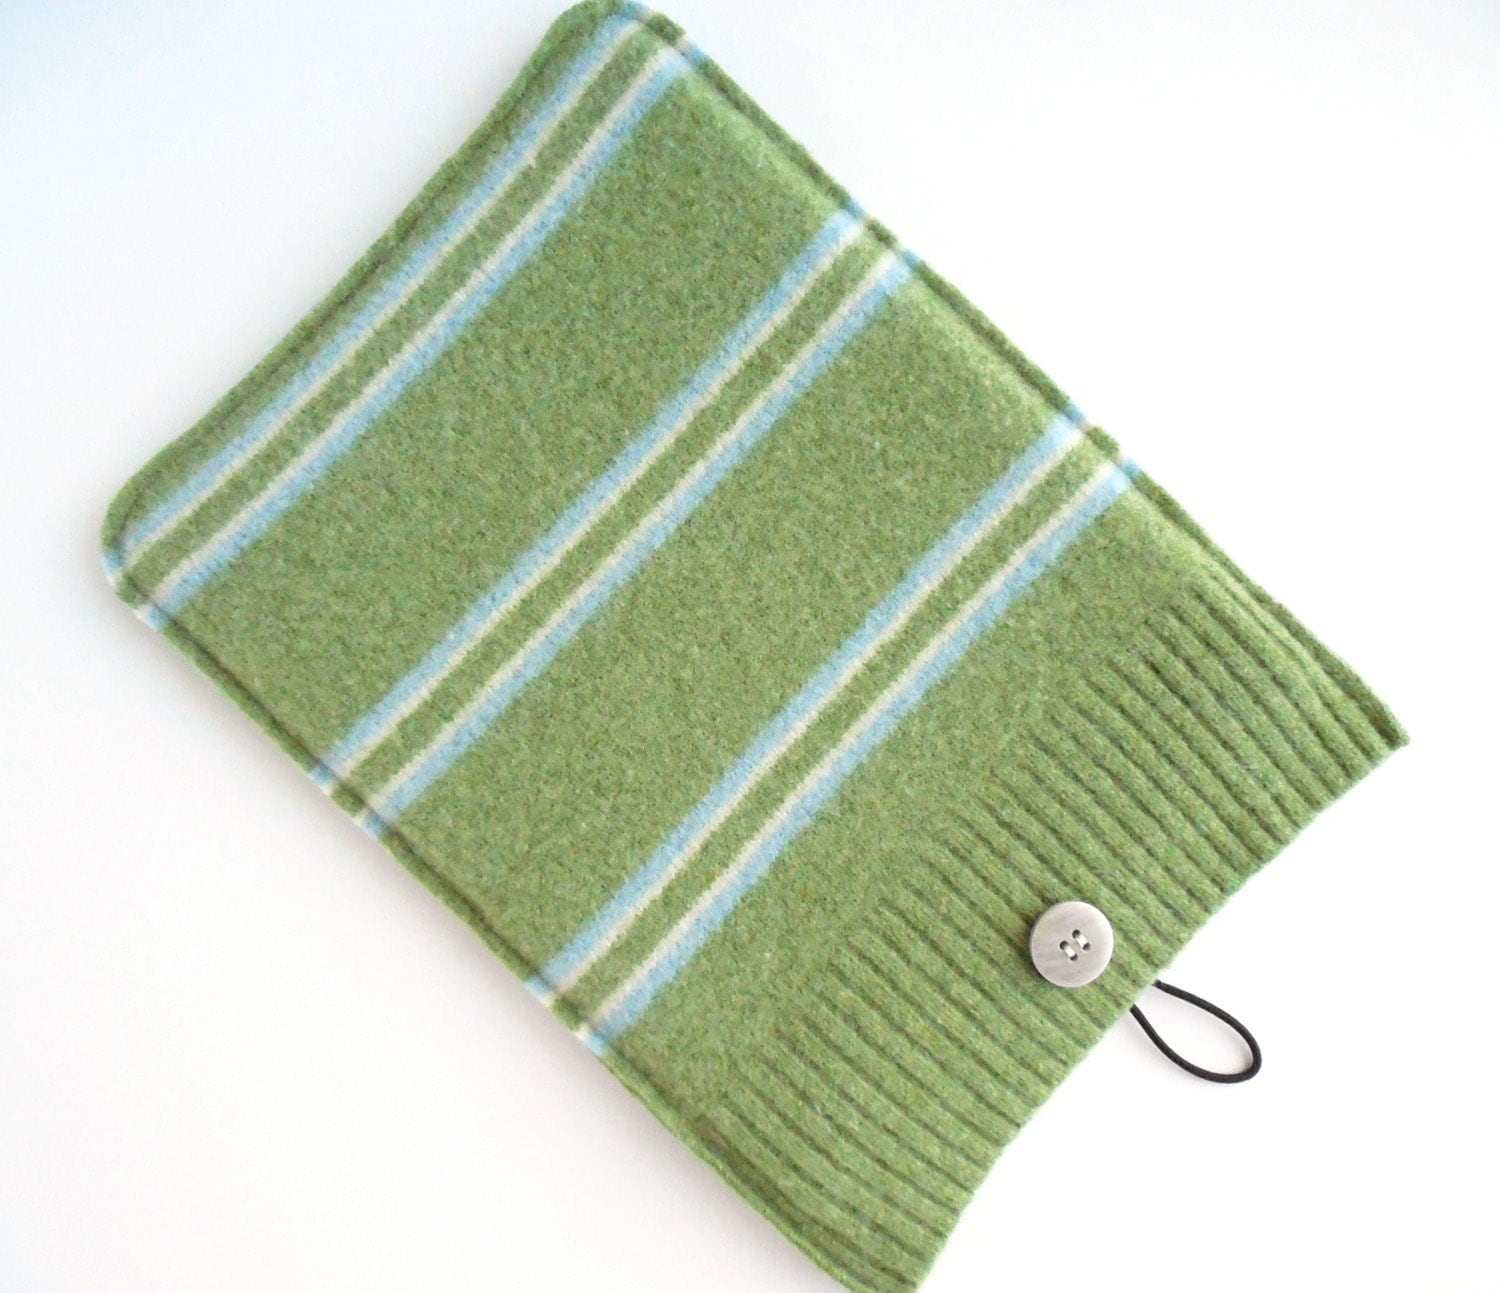 iPad Air Sleeve, Sage Green with Blue and Cream Stripes Felted Wool, Upcycled, Kindle HD & HDX, Nook HD, Tablet Wool Cover Case - TrendyEarth